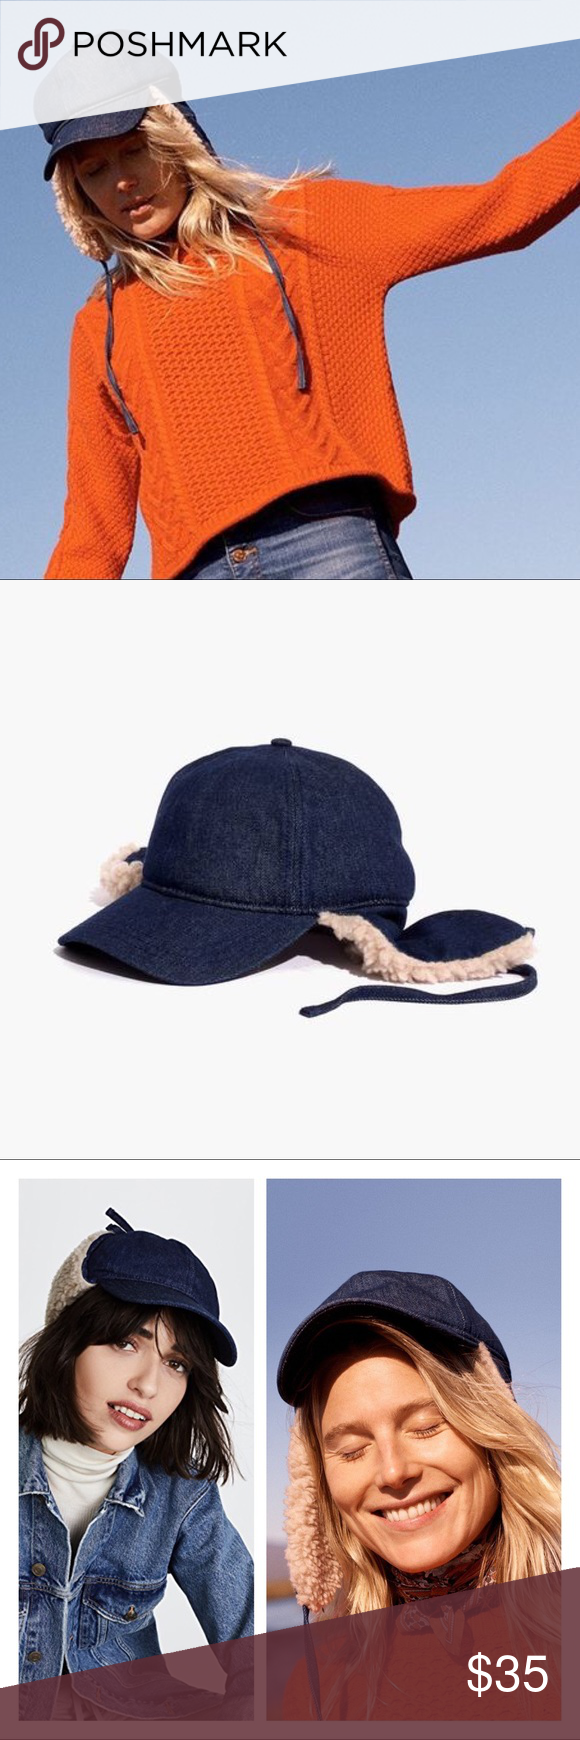 de0cda5b22617 madewell • baseball trapper cap in denim New with tags. Such a statement  piece!